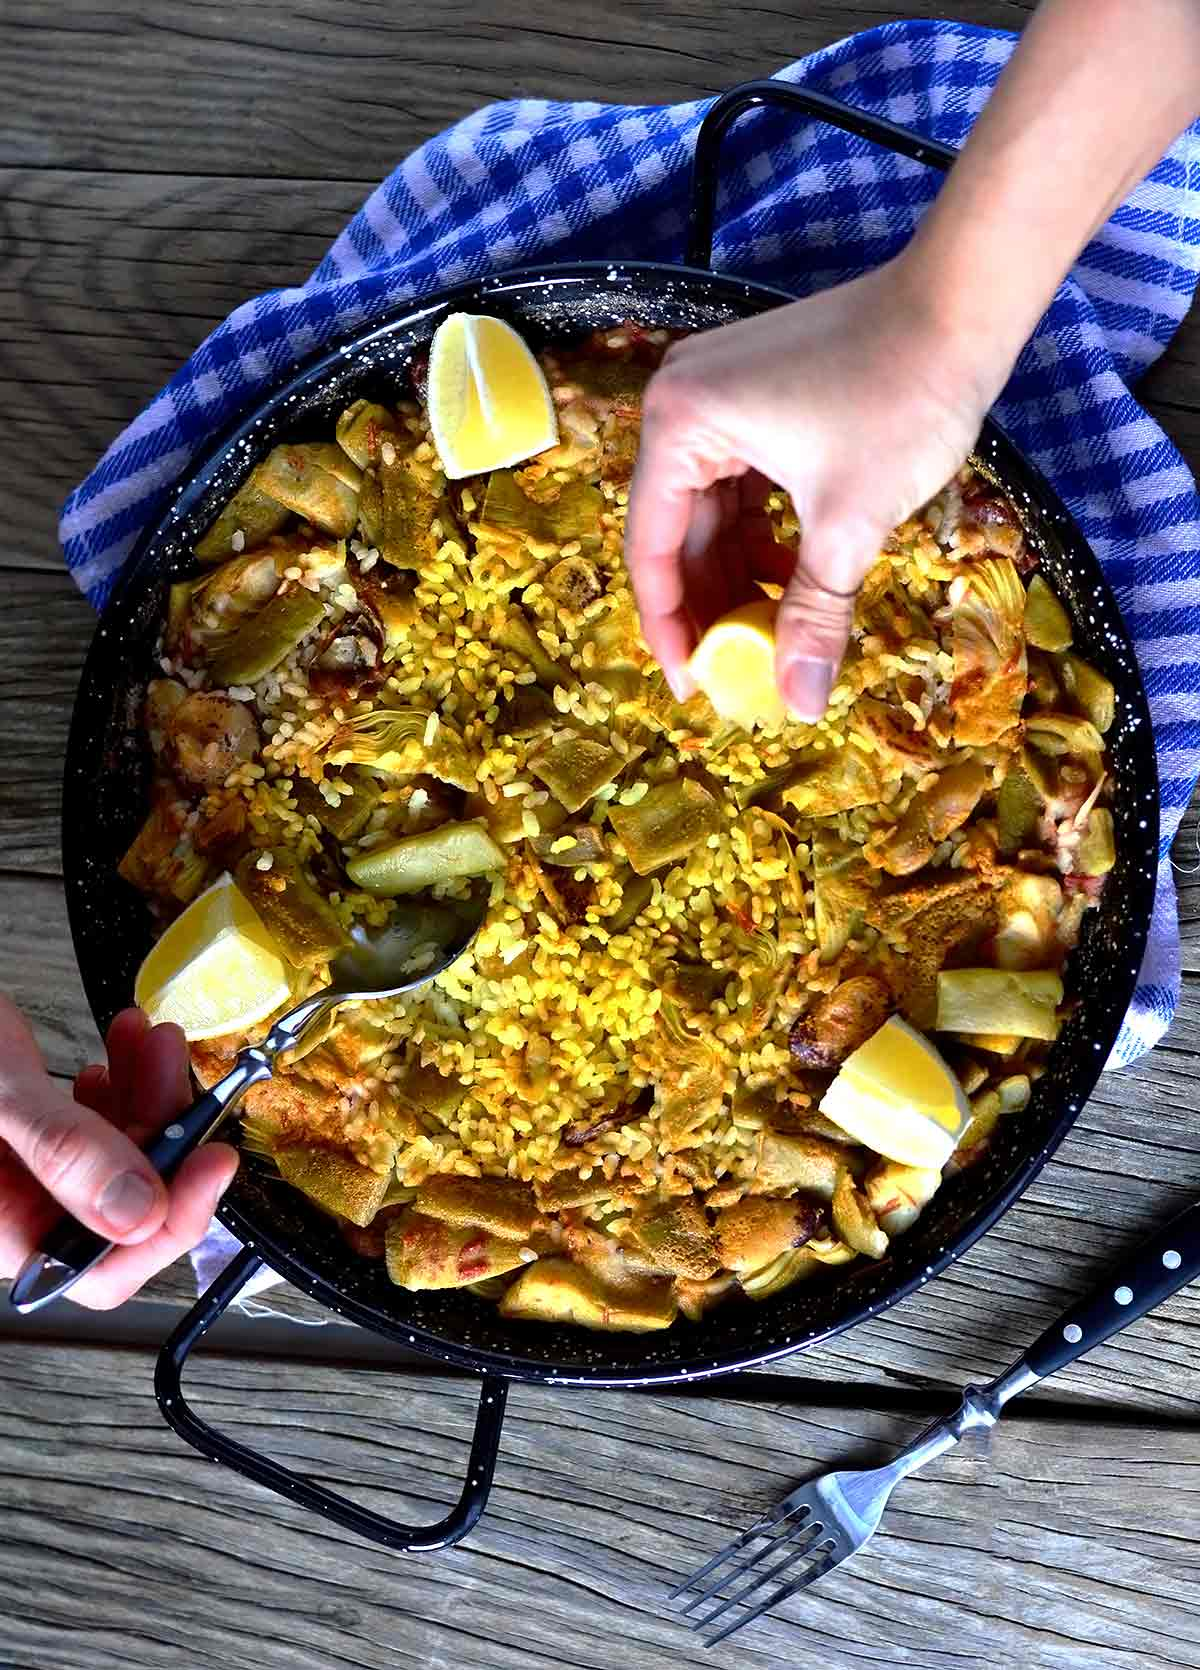 Two people eating from a paella in a pan